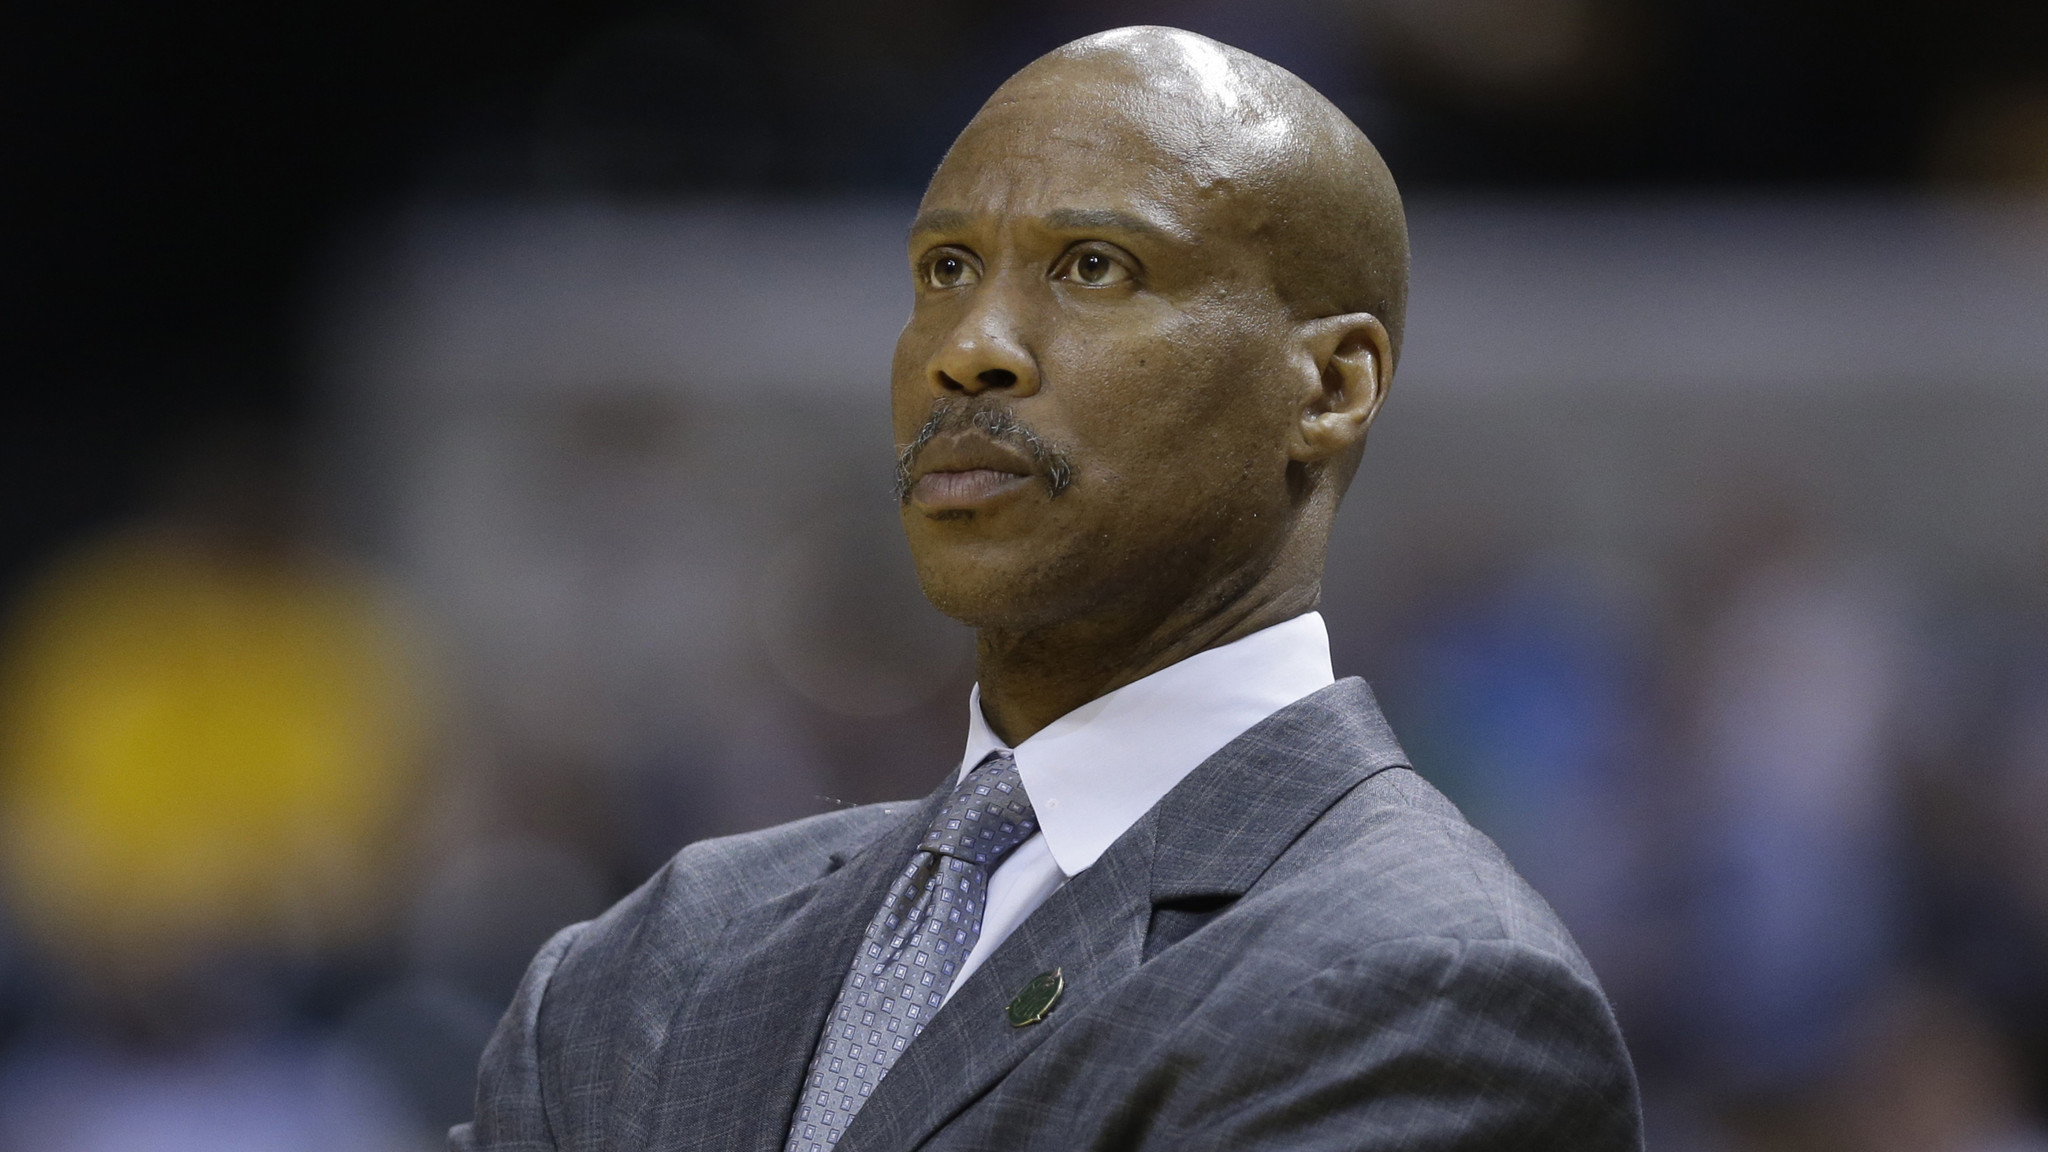 Byron Scott brings calm to Lakers' storm, making him the right choice